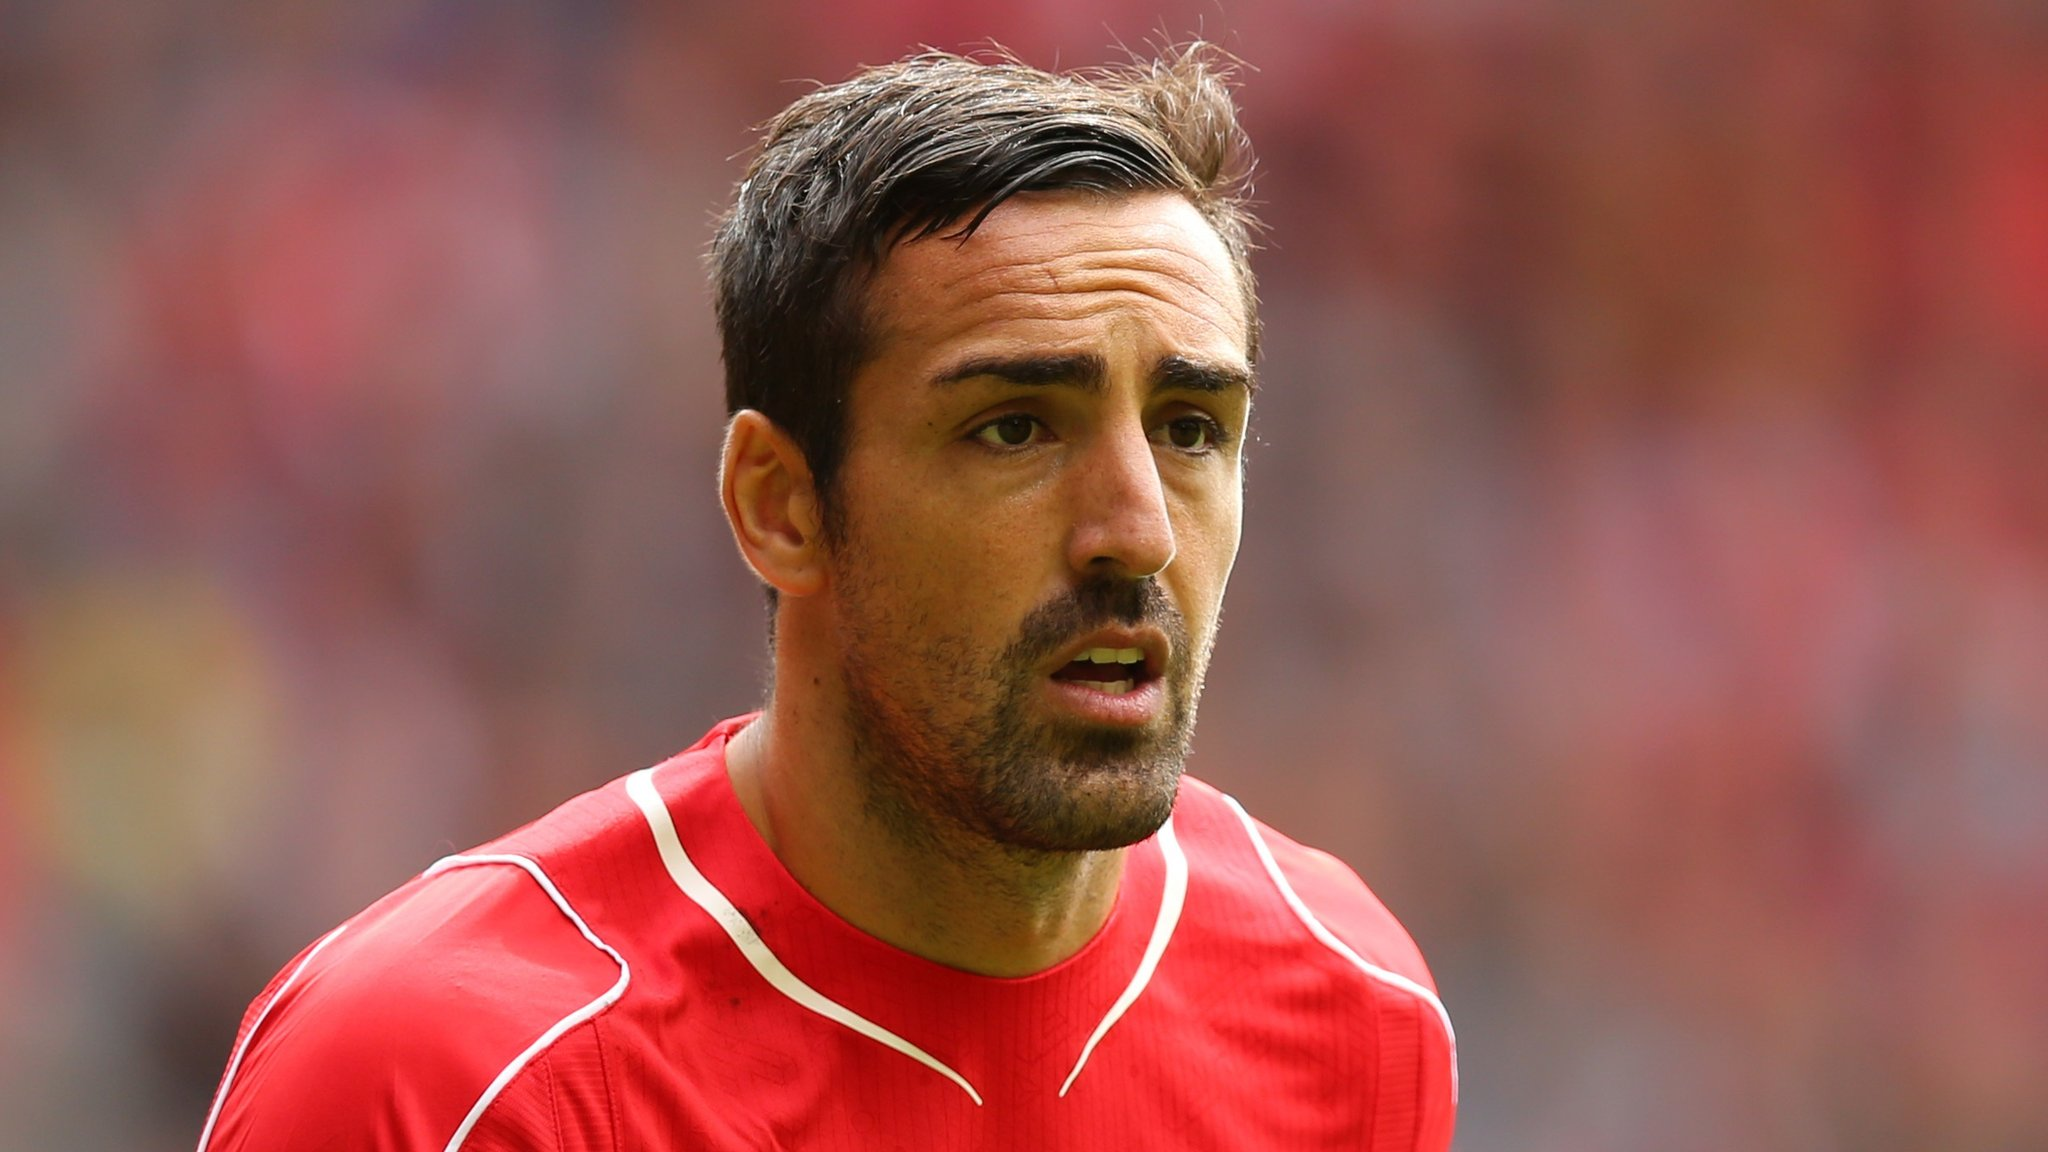 Ex-Liverpool defender Enrique recovering from brain surgery